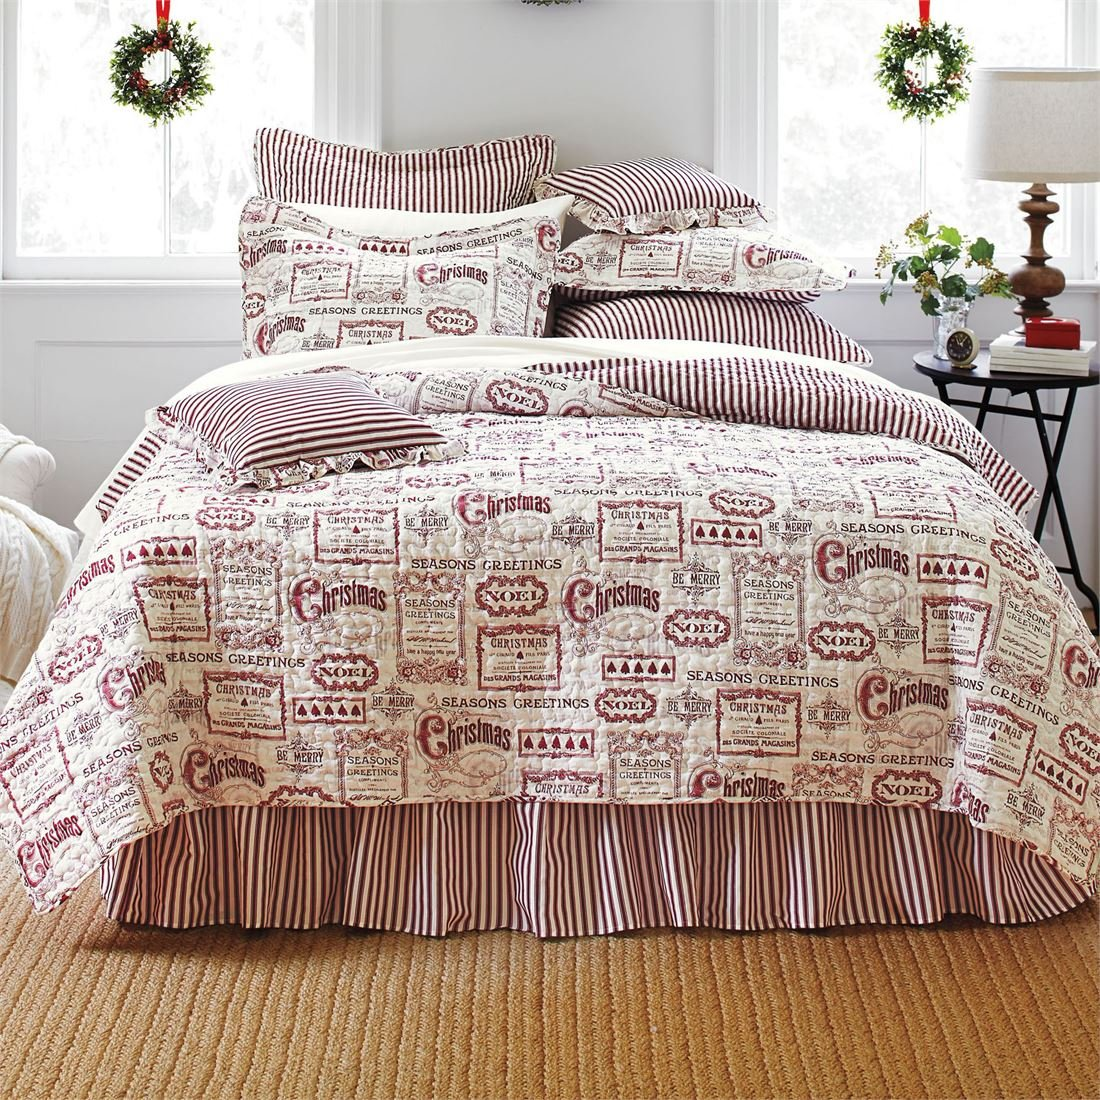 Christmas Comforters King Size